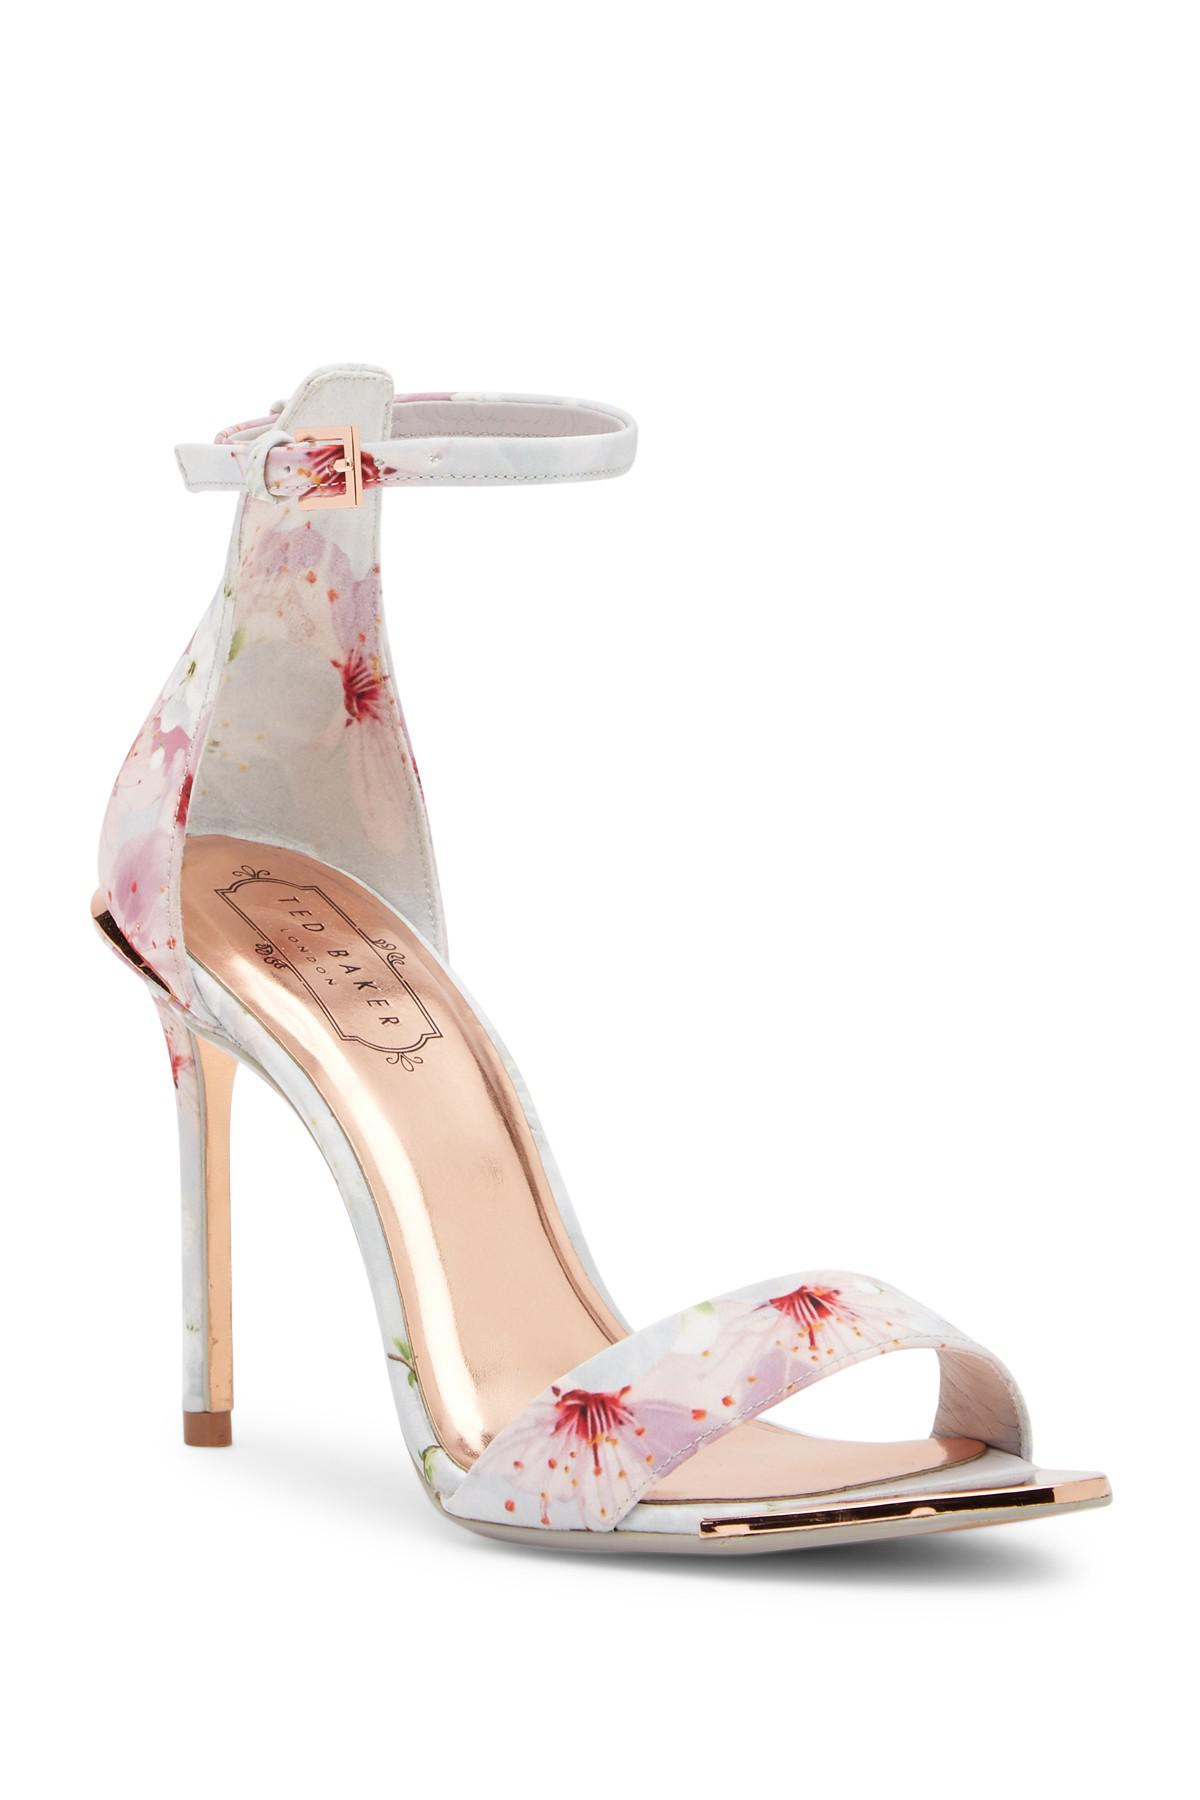 6fc2c6569 Lyst - Ted Baker Charv Floral Heeled Sandal in Pink